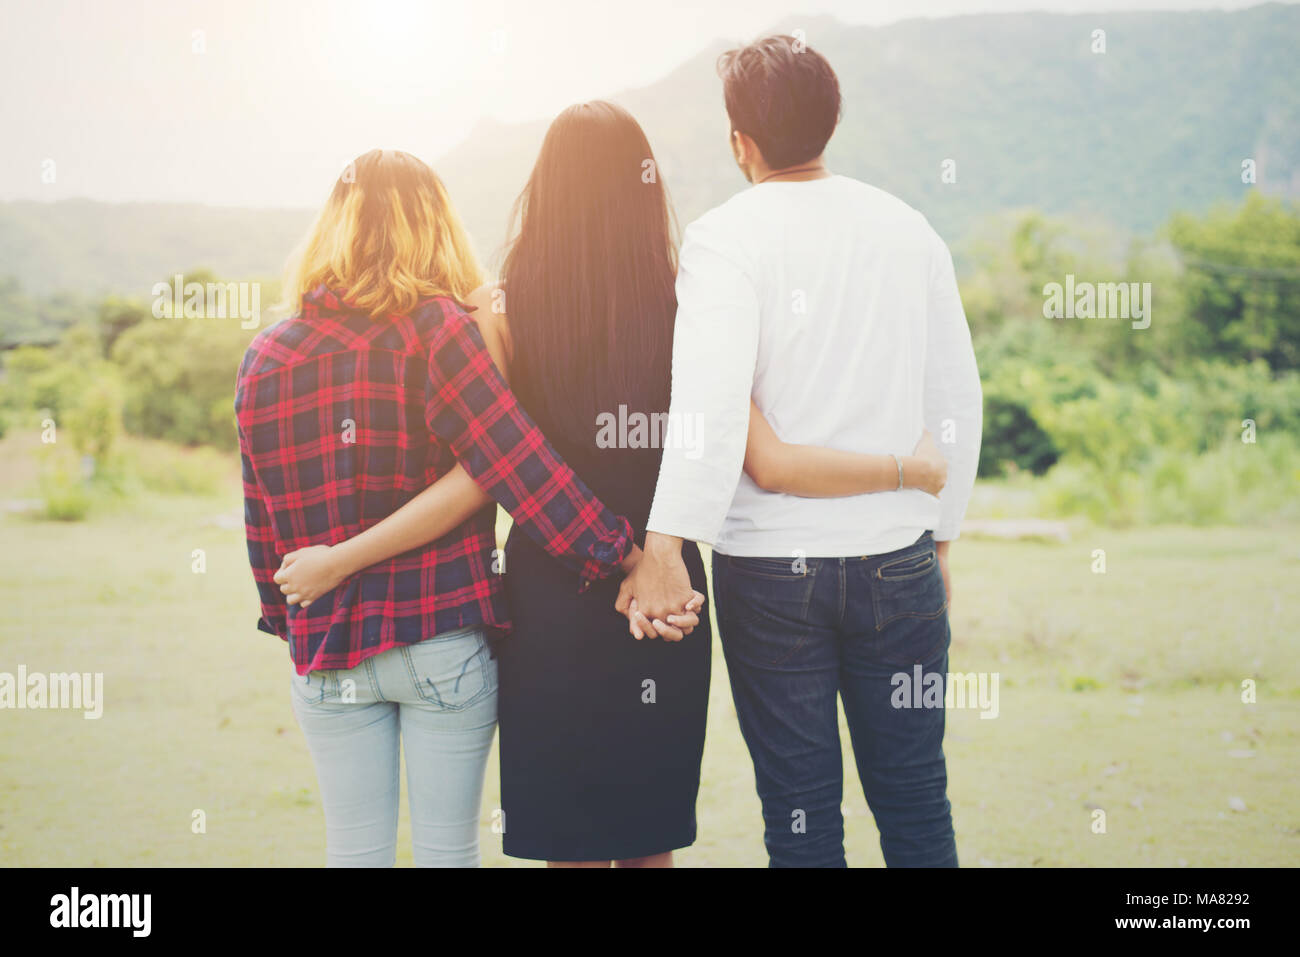 Love triangle, Man is hugging a woman and he is holding hands with another girl,standing outdoor in the park. - Stock Image